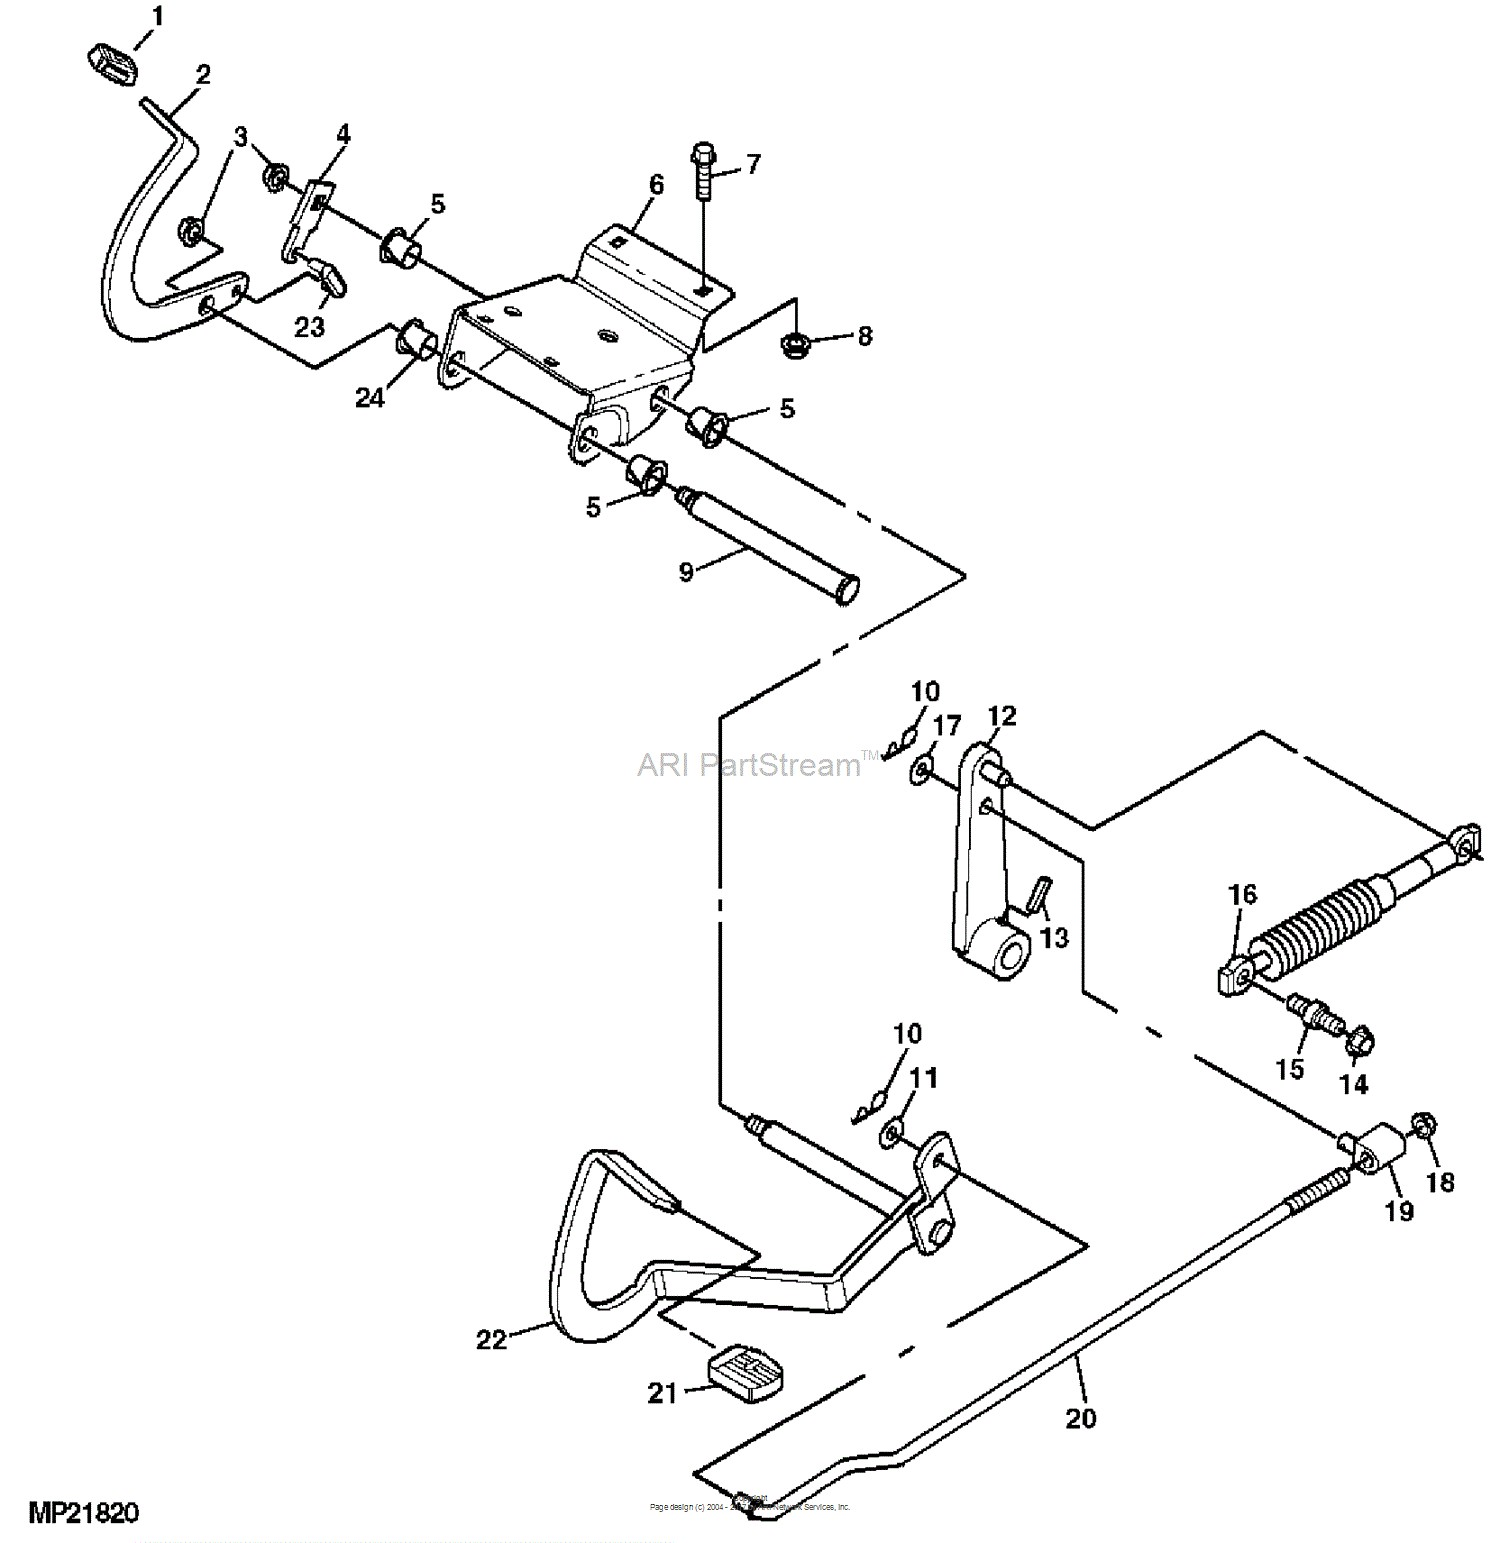 John Deere Parts Diagrams John Deere LT155 Lawn Tractor With 38 IN Mower Deck PC2607 FORWARD & REVERSE PEDALS AND LINKAGE STEERING AND BRAKES